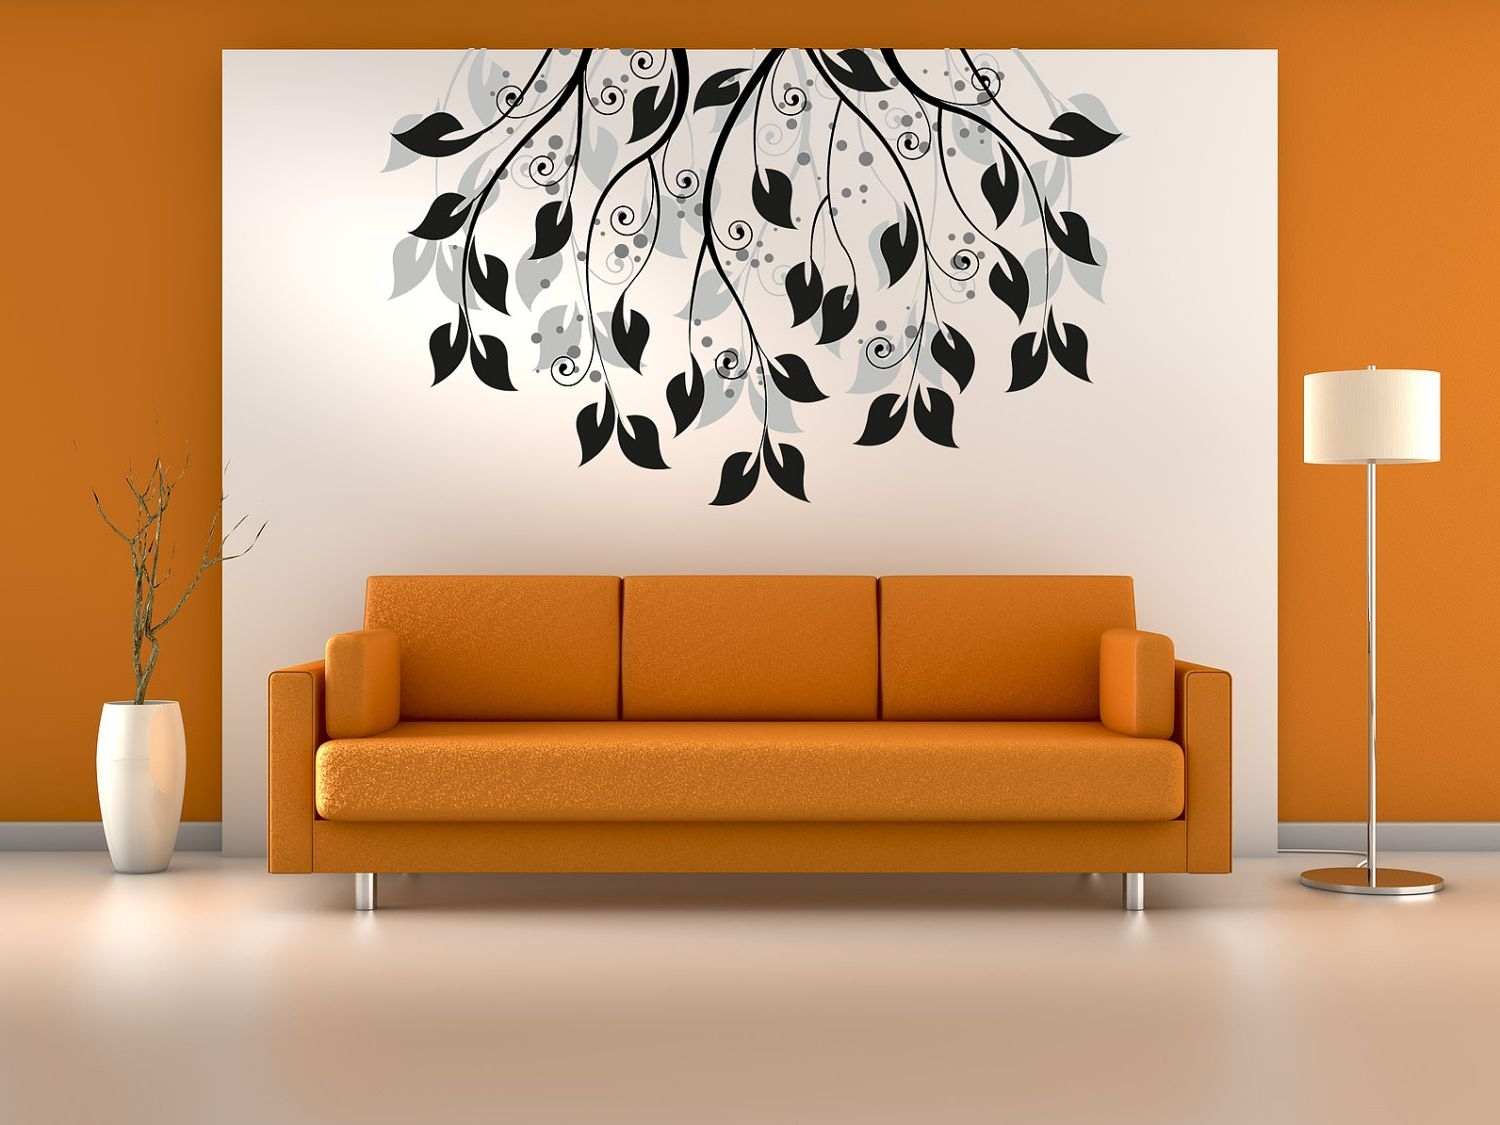 Living Room : Creative Painting Ideas For Walls With White Wall Throughout 2018 Art For Walls (View 9 of 20)